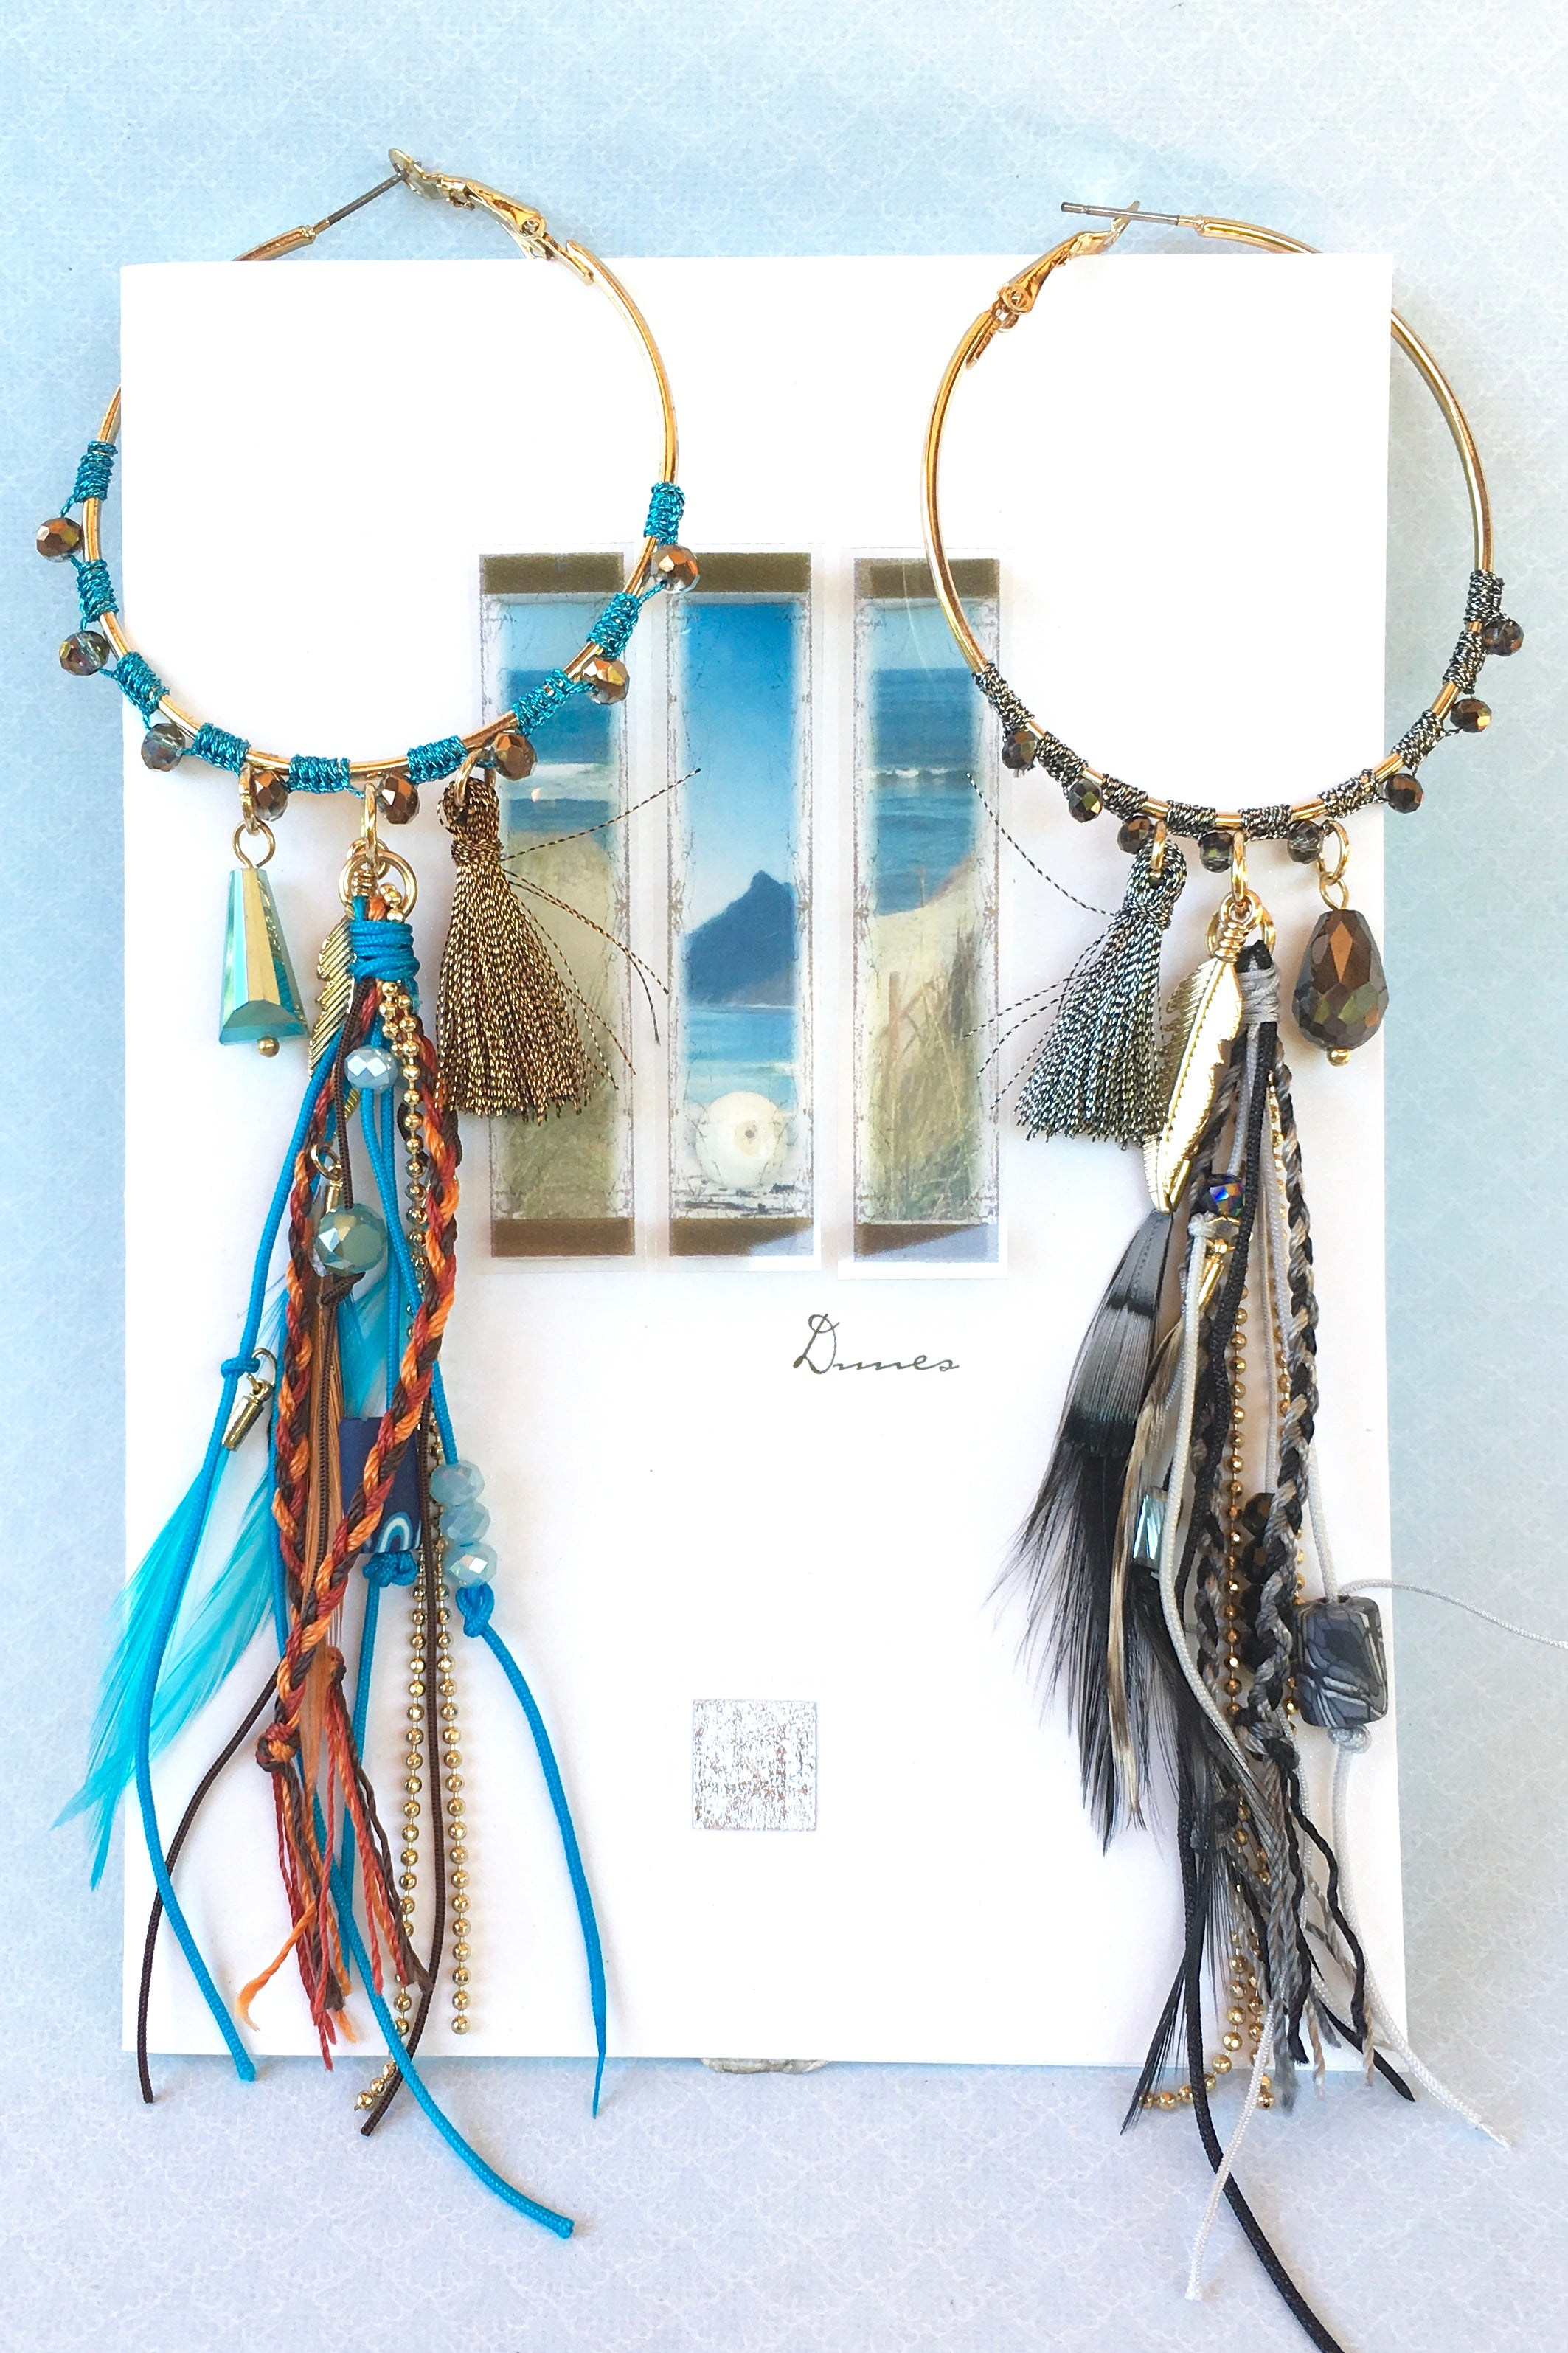 Women's statement jewellery. Gold Hoop Earrings with feathers, braids and beaded detailing. Gypsy and bohemian inspired. In Turquoise or Black. Perfect for festivals, holidays, night out. Gorgeous accessory, perfect gift for all women. Designed in Brisbane Australia.